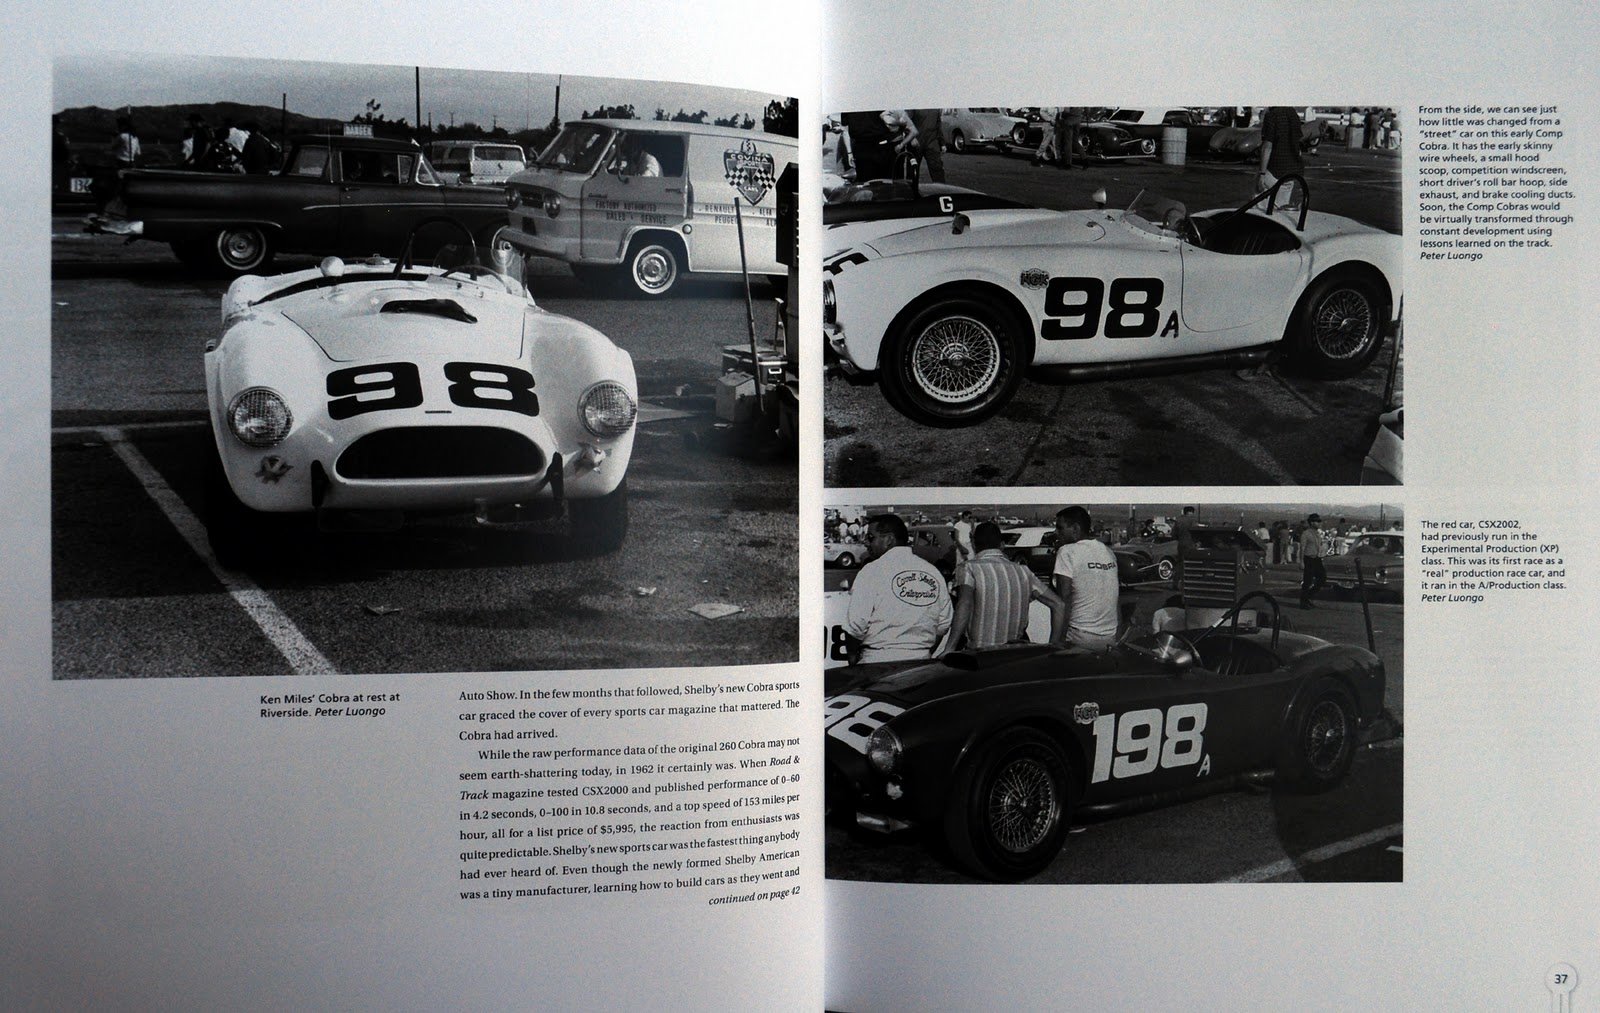 Just A Car Guy Book Review Shelby Cobra Fifty Years Incredibly Quot Mighty Cord Rv Wiring Likewise 2014 Lexus Factory Diagram Chapter 2 Gets Thoroughly Into The Early Racing Drivers And Events